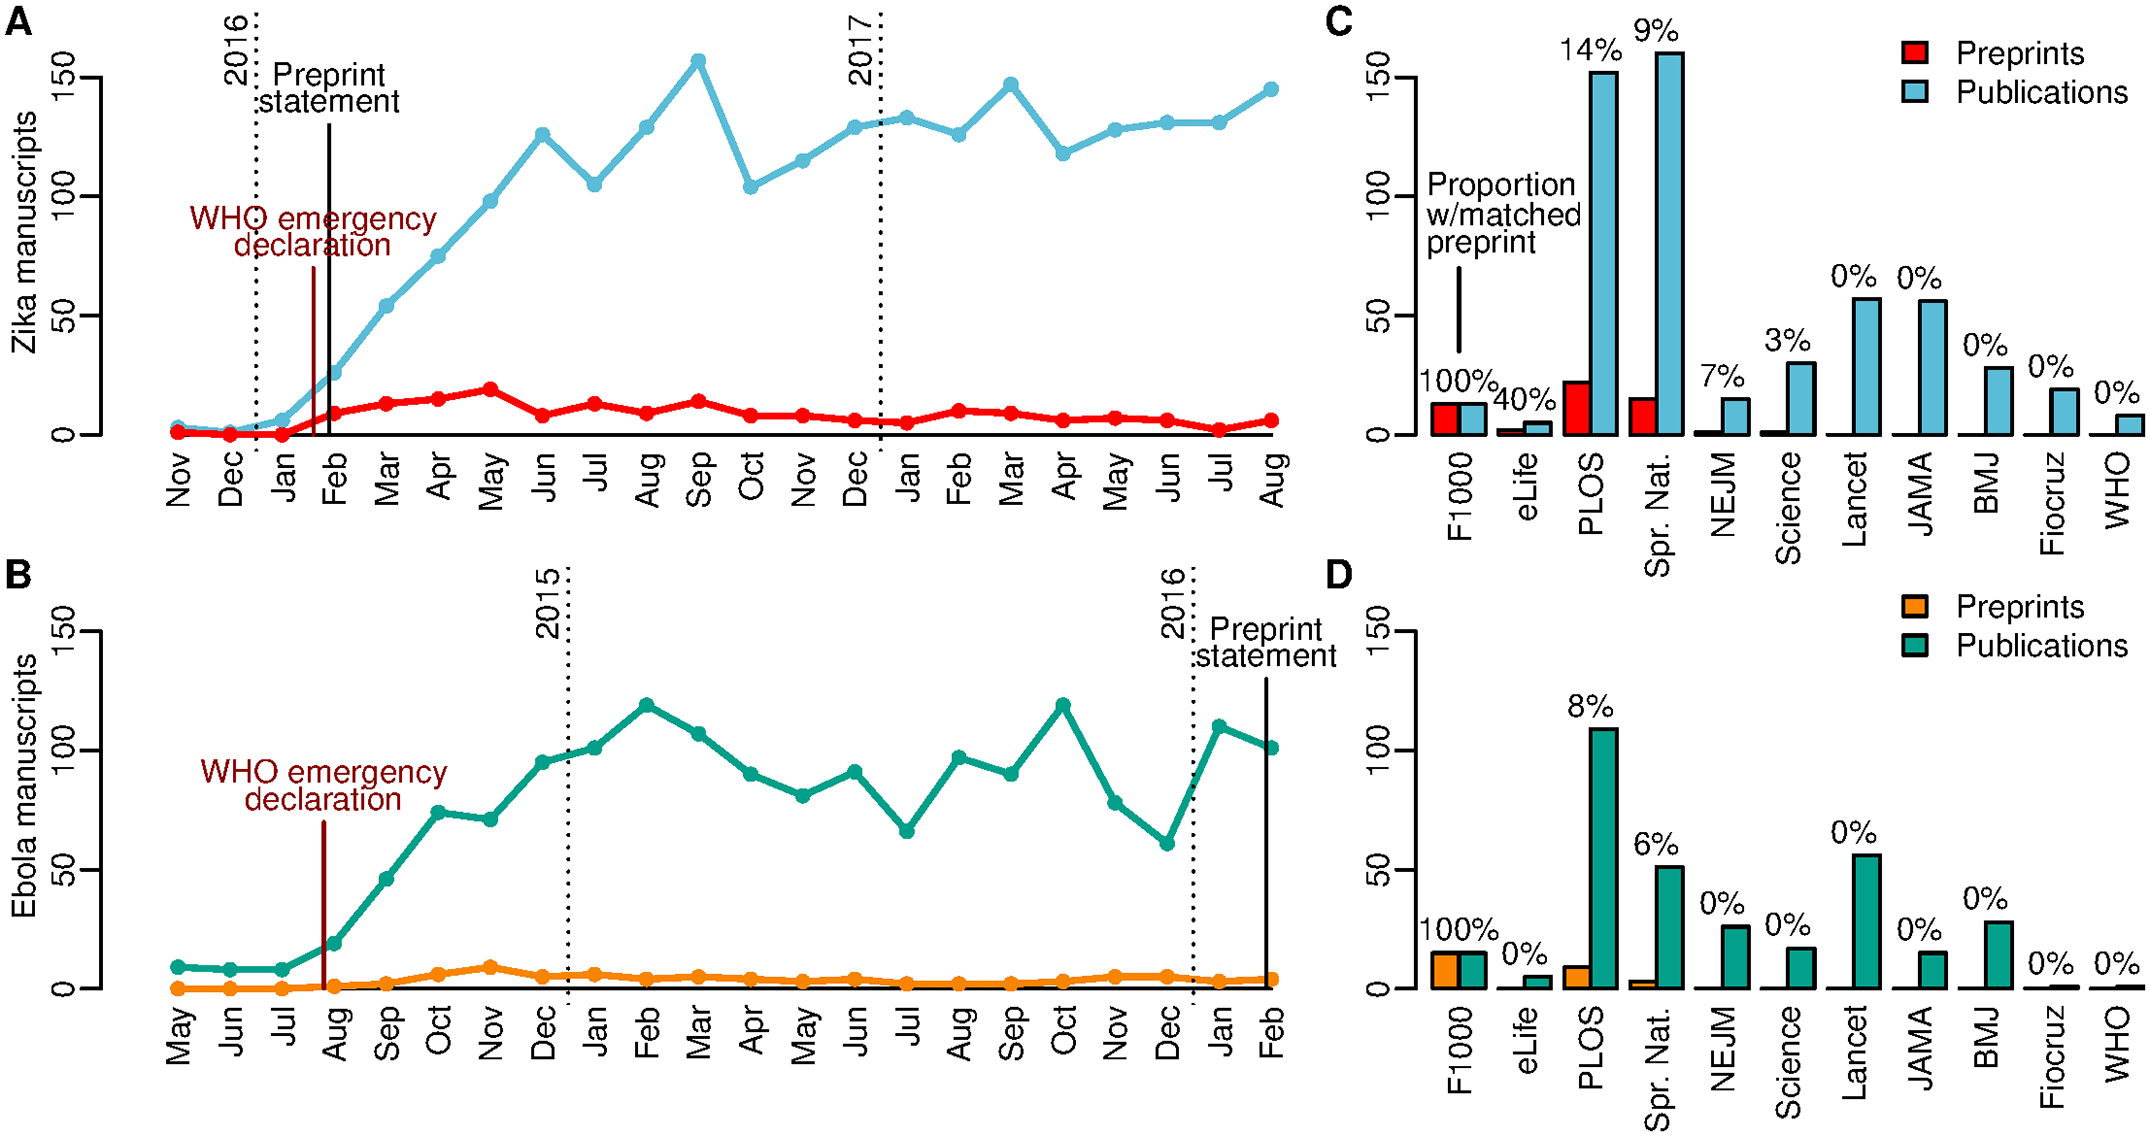 Zika and Ebola outbreak preprints and publications.